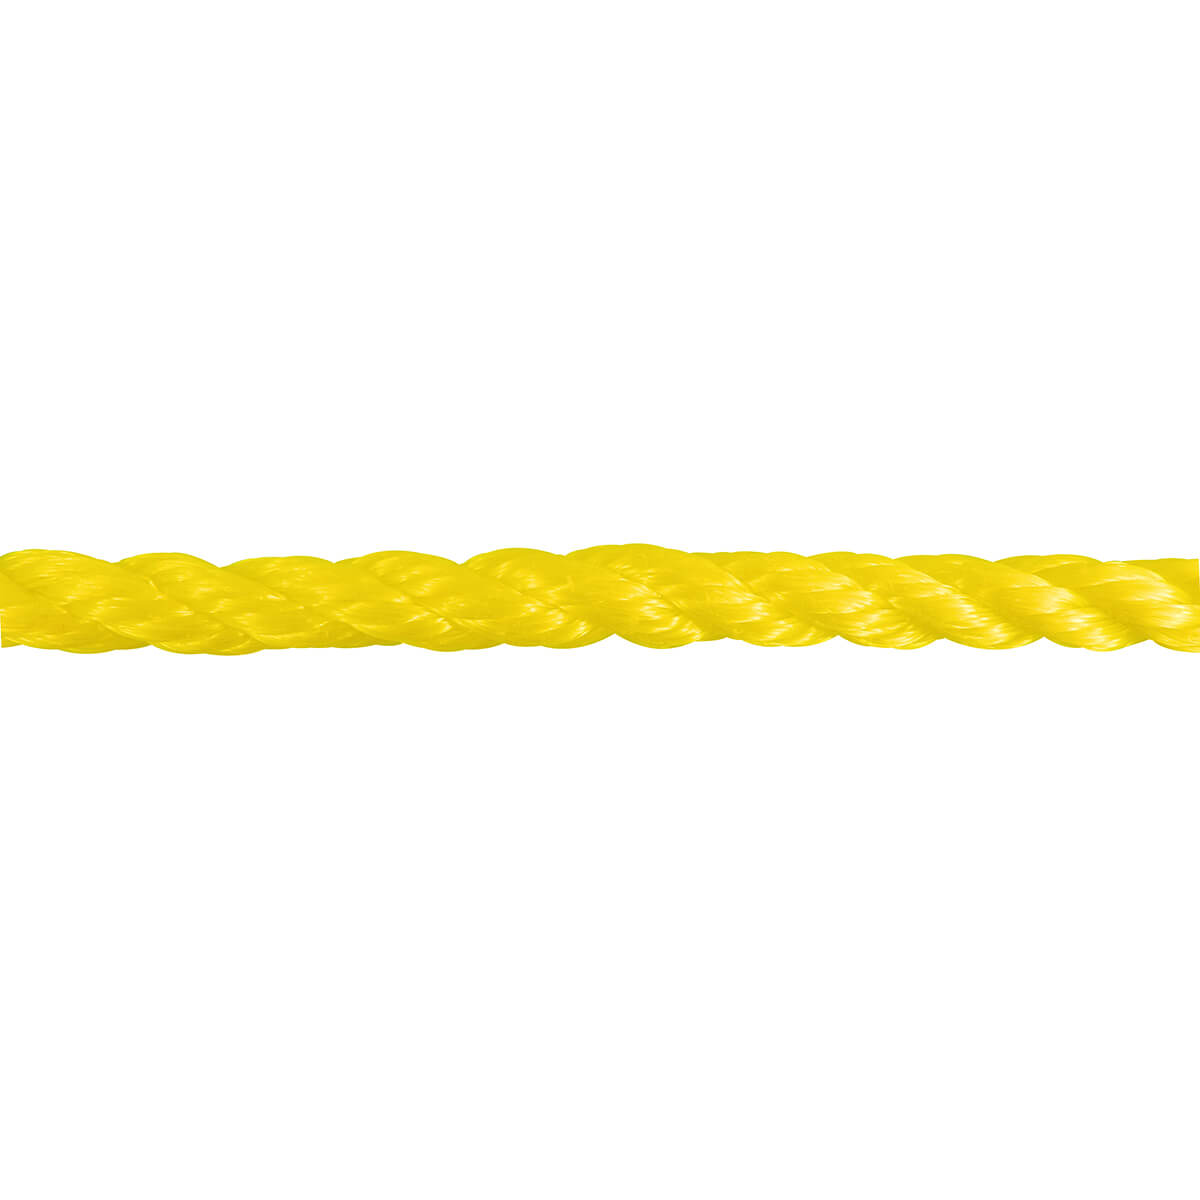 Polypropylene Twisted Rope - Yellow - 1/4-in x 50-ft